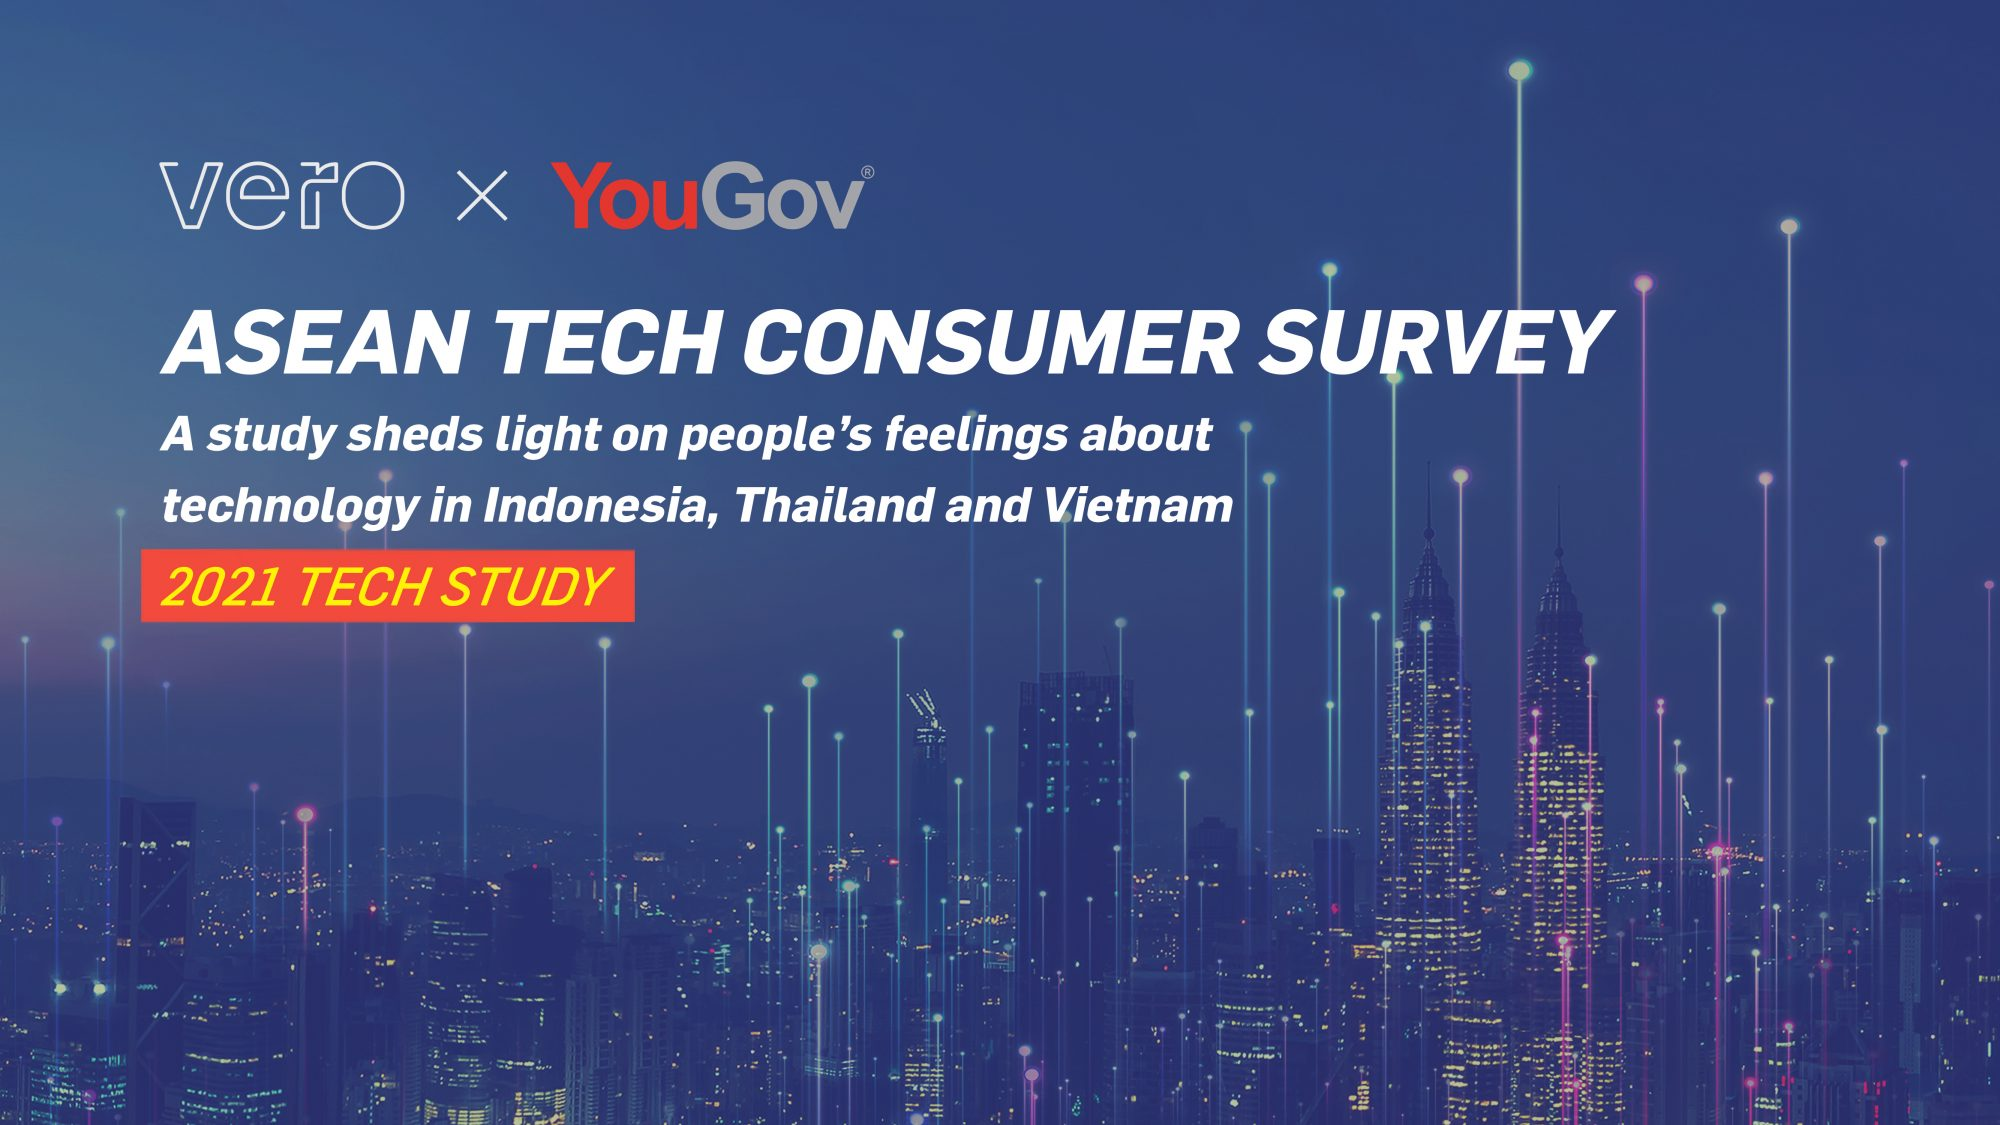 Vero x YouGov Study Reveals Tech Consumer Preferences in Indonesia, Thailand, and Vietnam during Covid-19